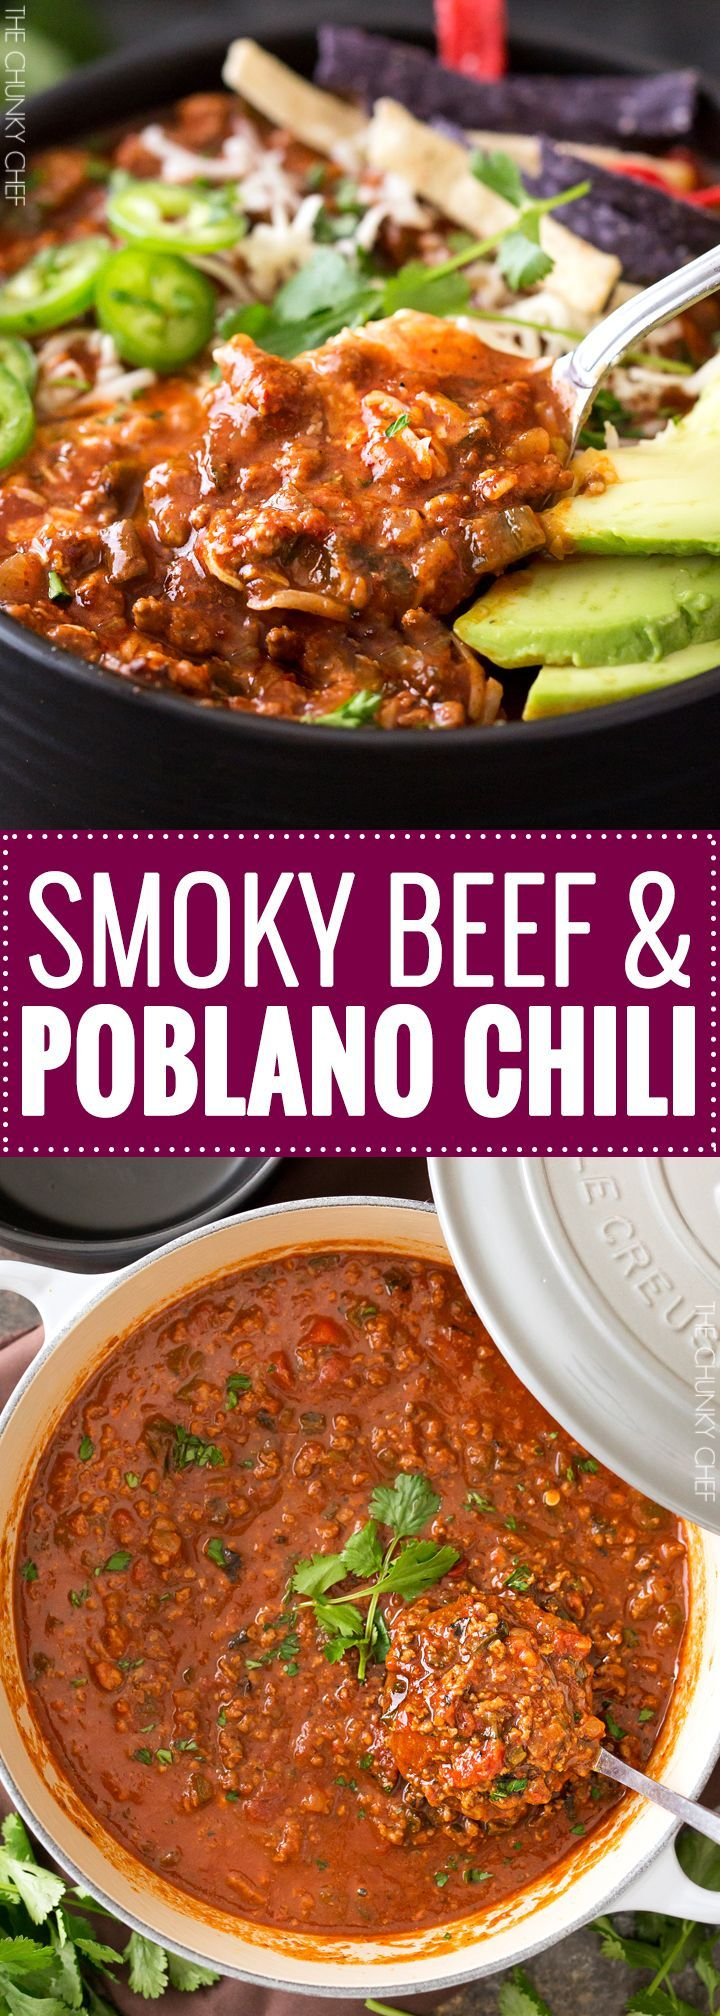 Smoky Beef and Poblano Chili | A hearty beef and poblano pepper chili with just the right amount of heat and spice and full of great smoky flavor! Perfect for a game day meal! | http://thechunkychef.com